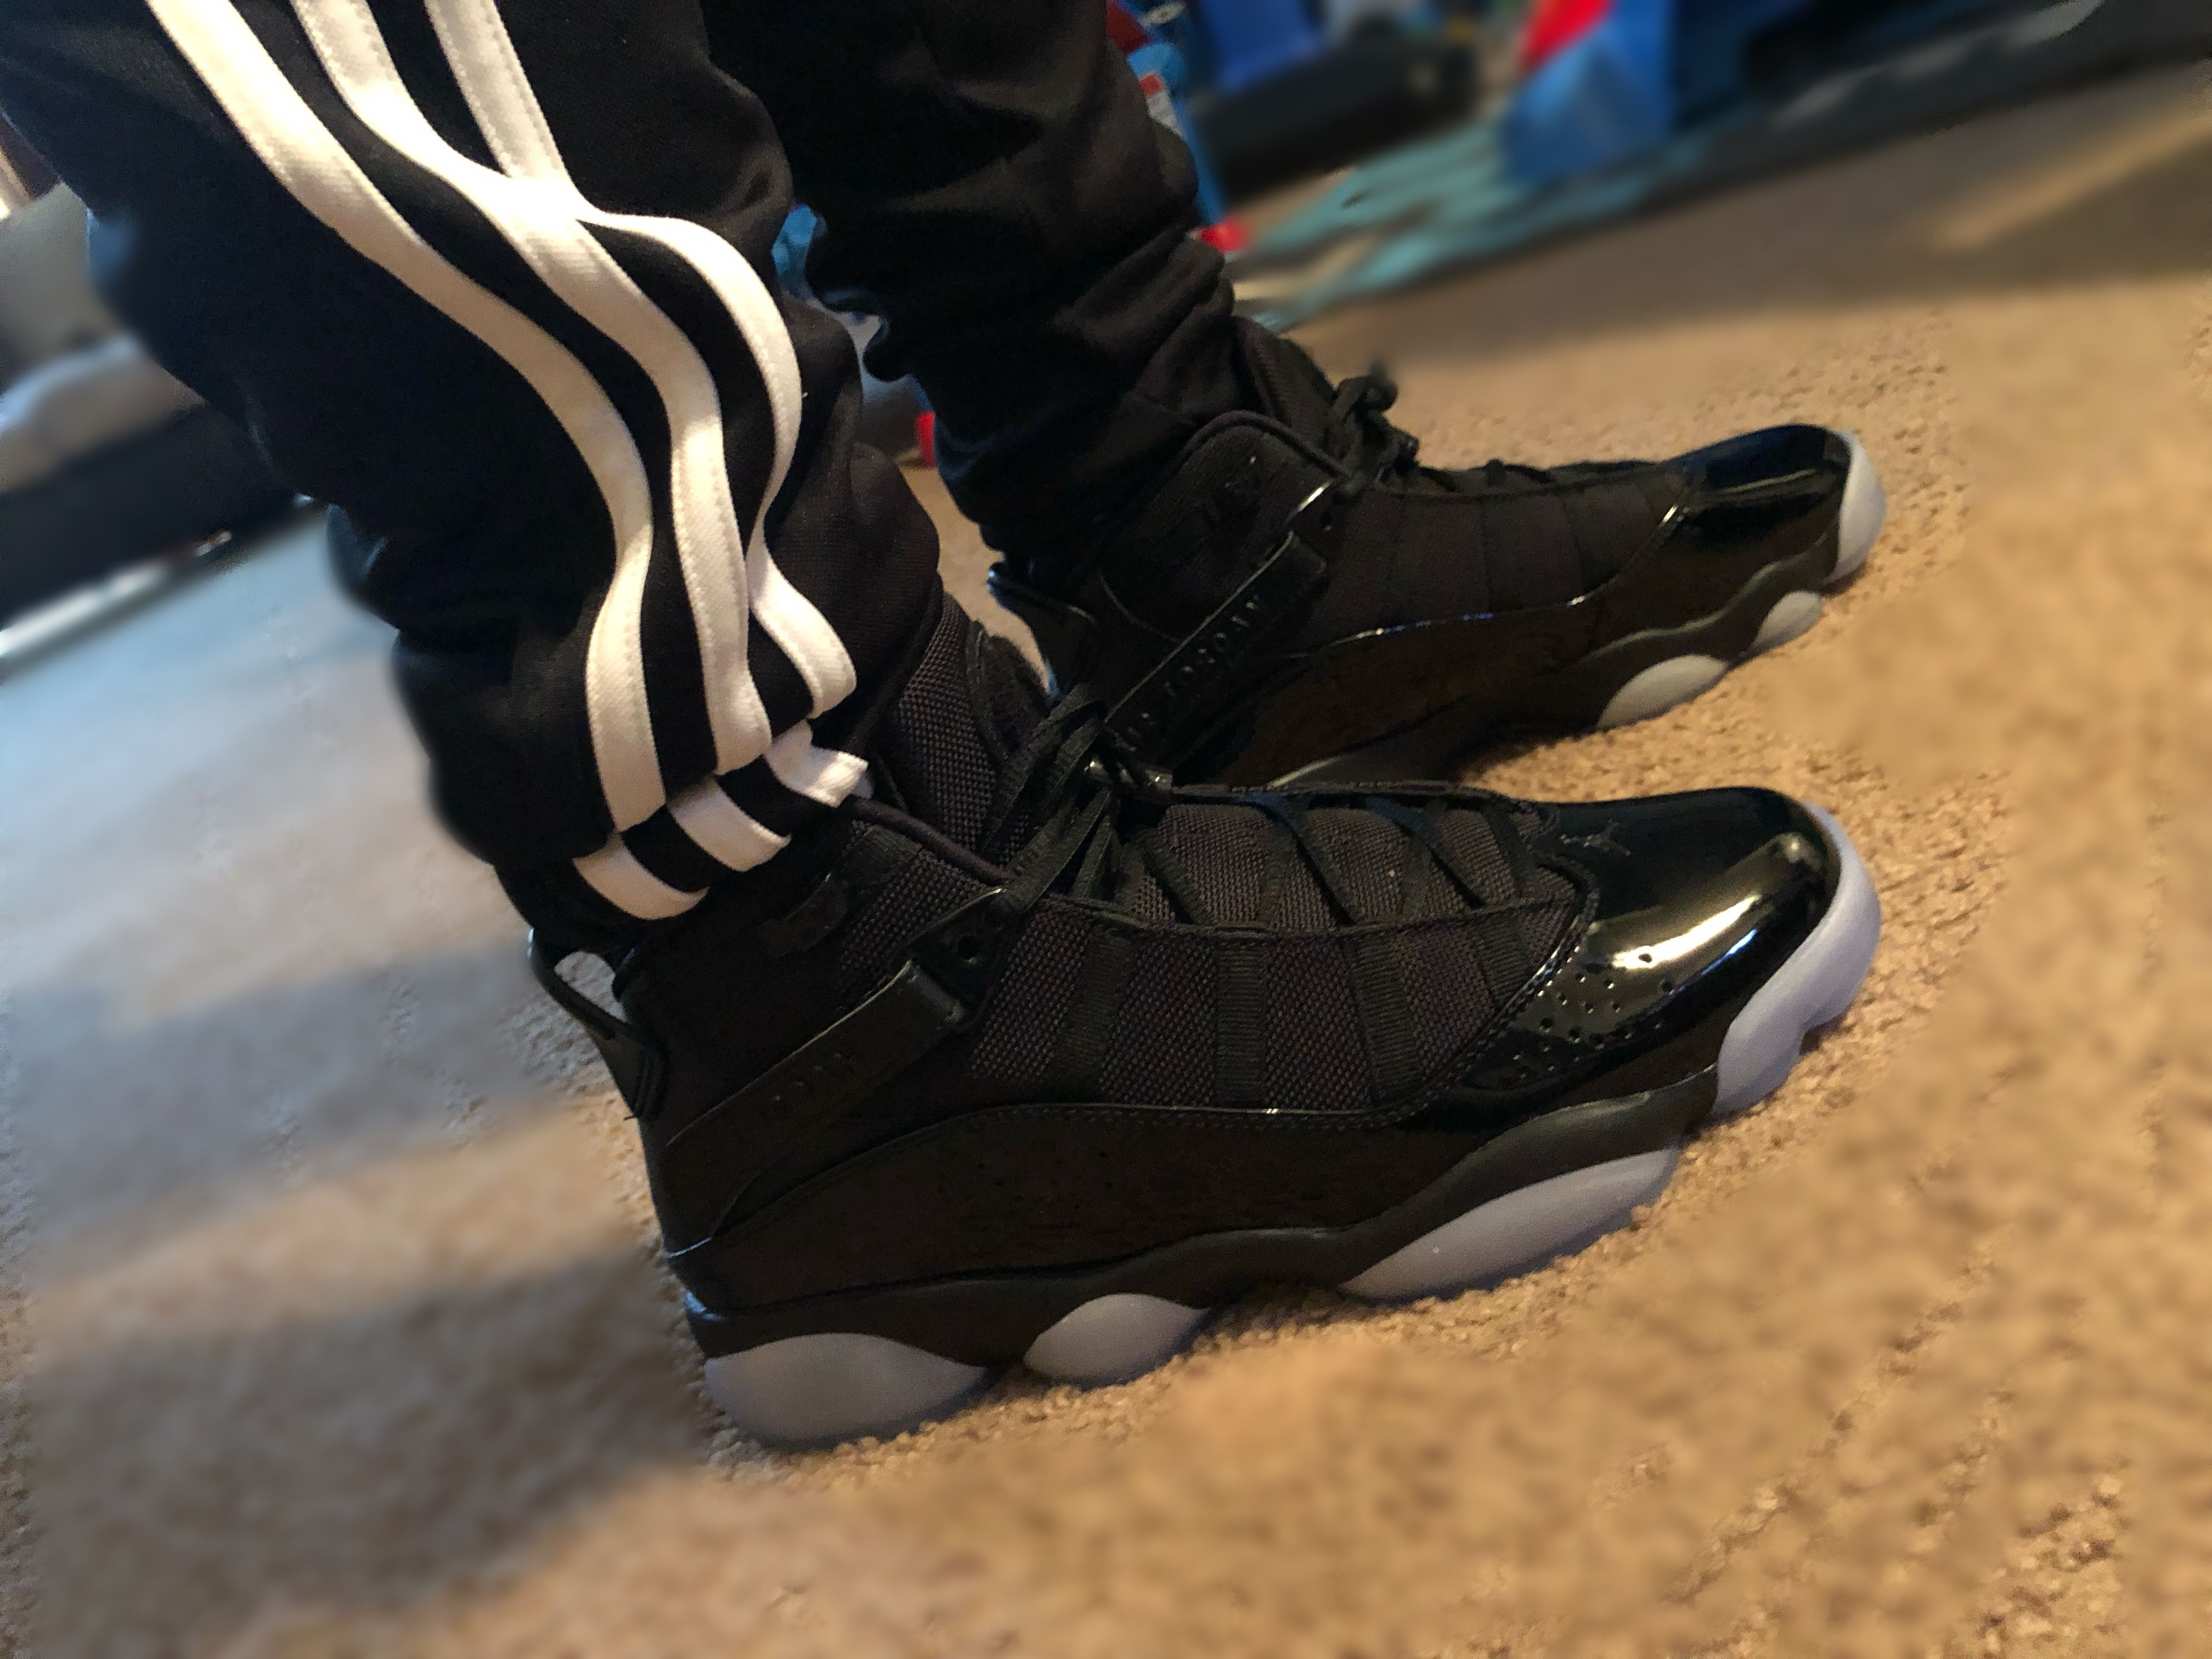 Jordan's 6 Rings All black with clear blue. | My styles in